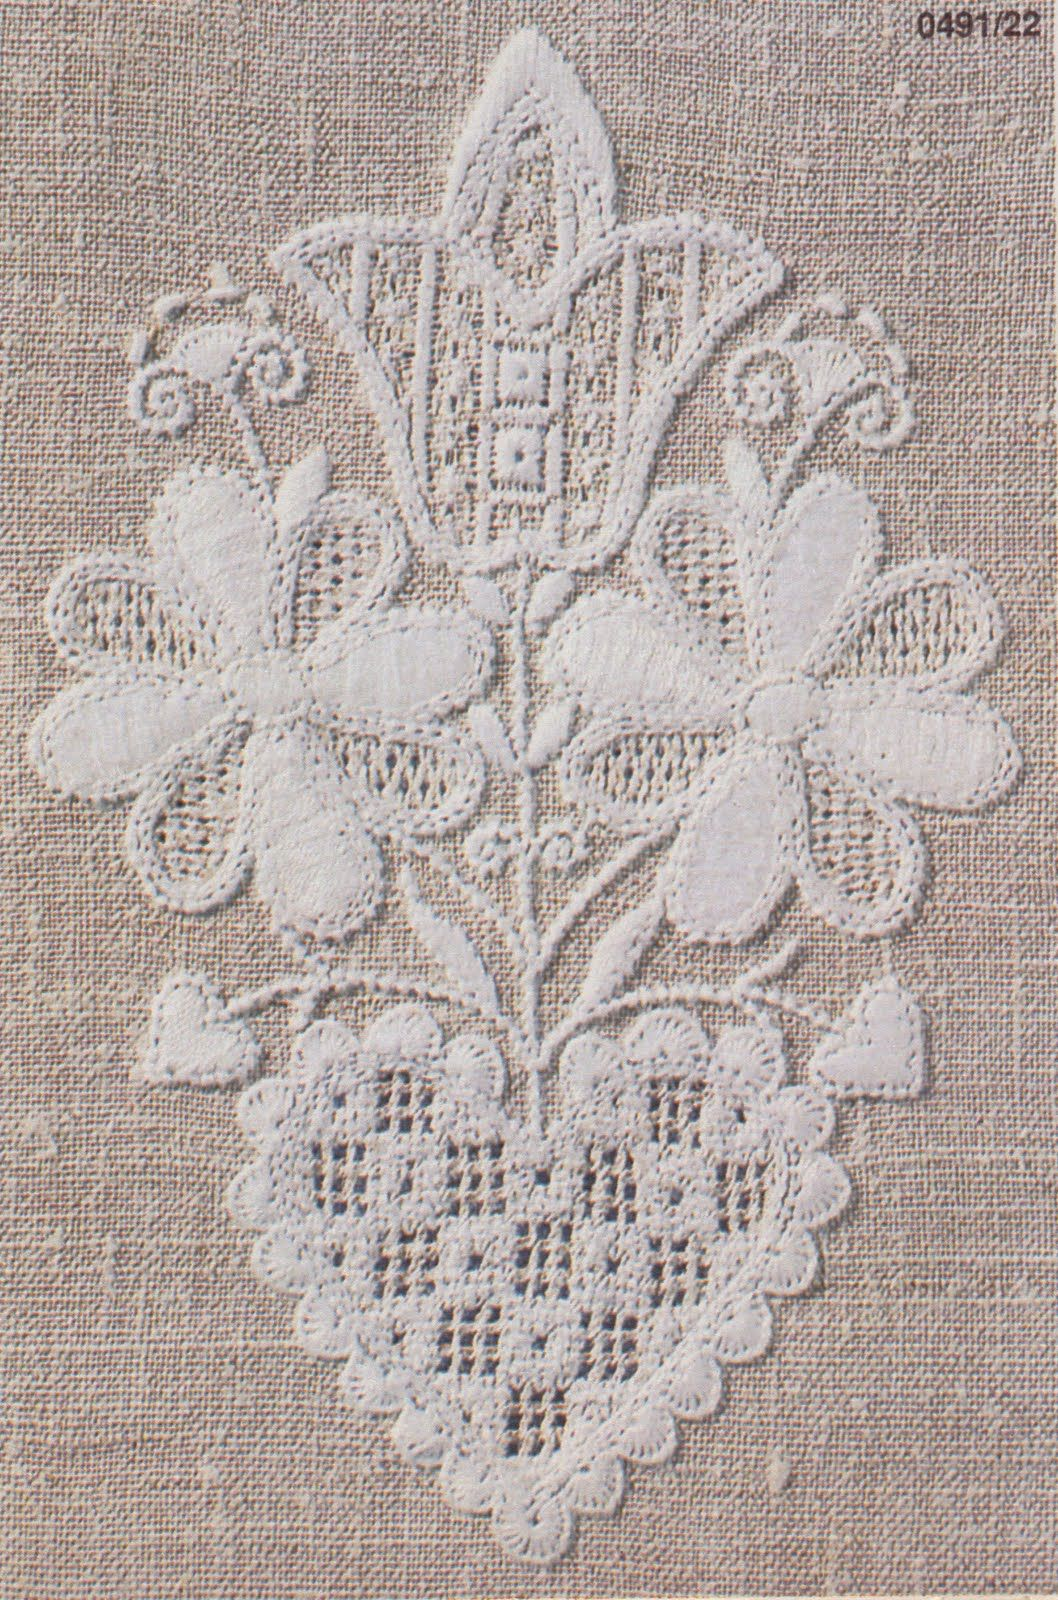 Schwalm Embroidery Schwalm Pinterest Embroidery Hardanger And